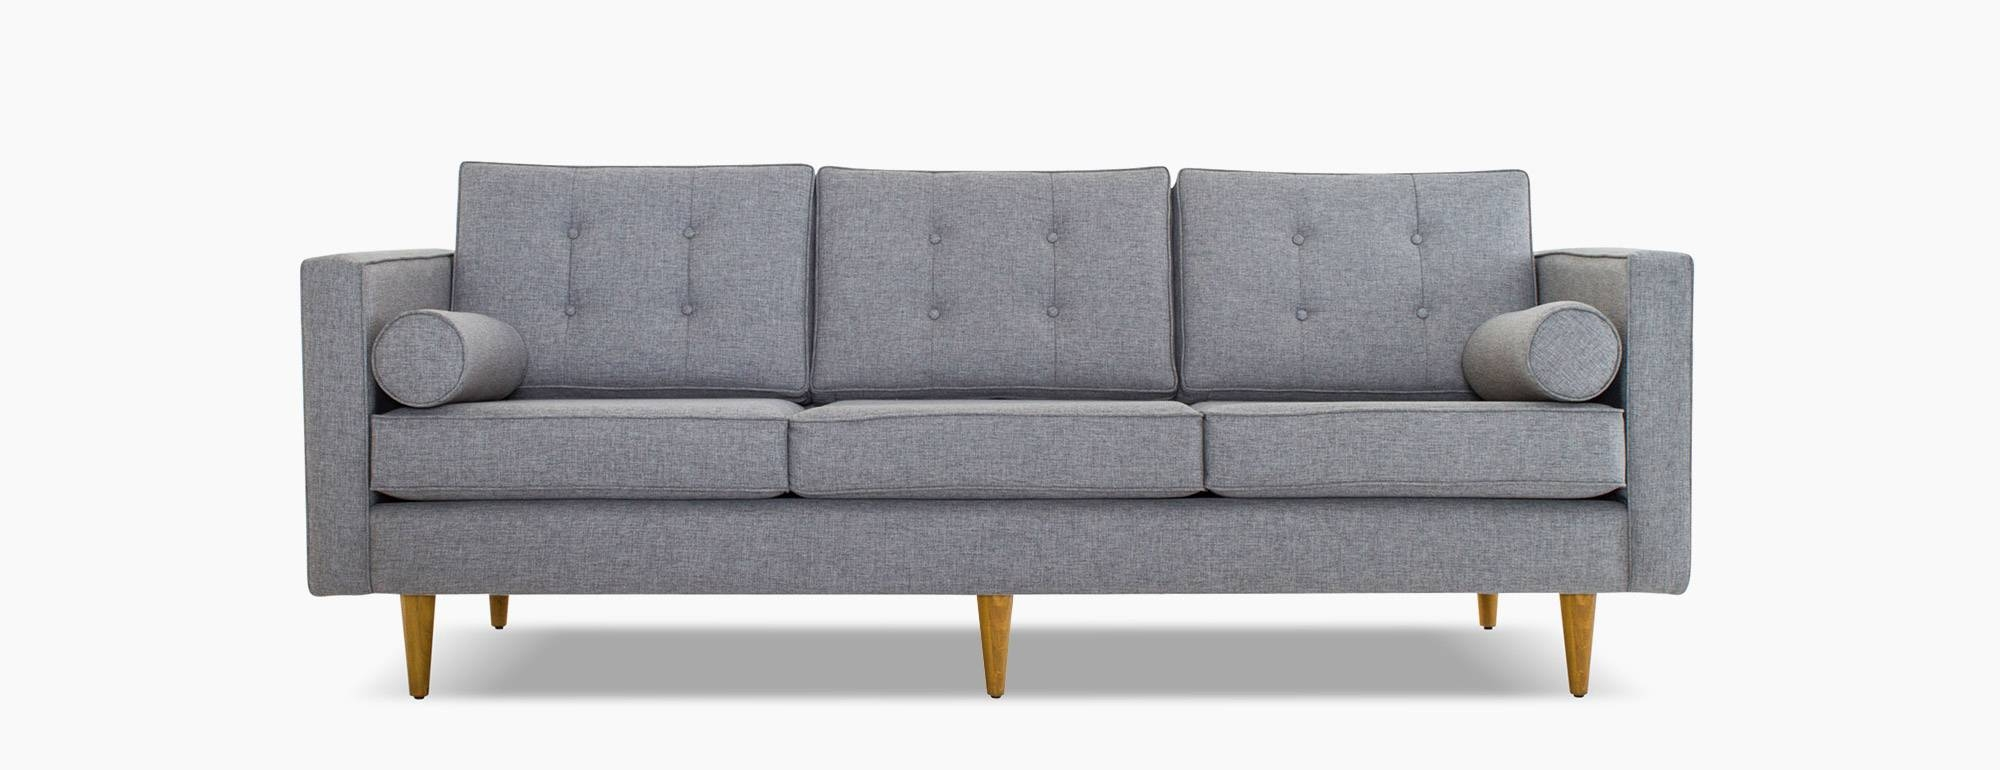 Braxton Sofa | Joybird with regard to Braxton Sofas (Image 12 of 15)